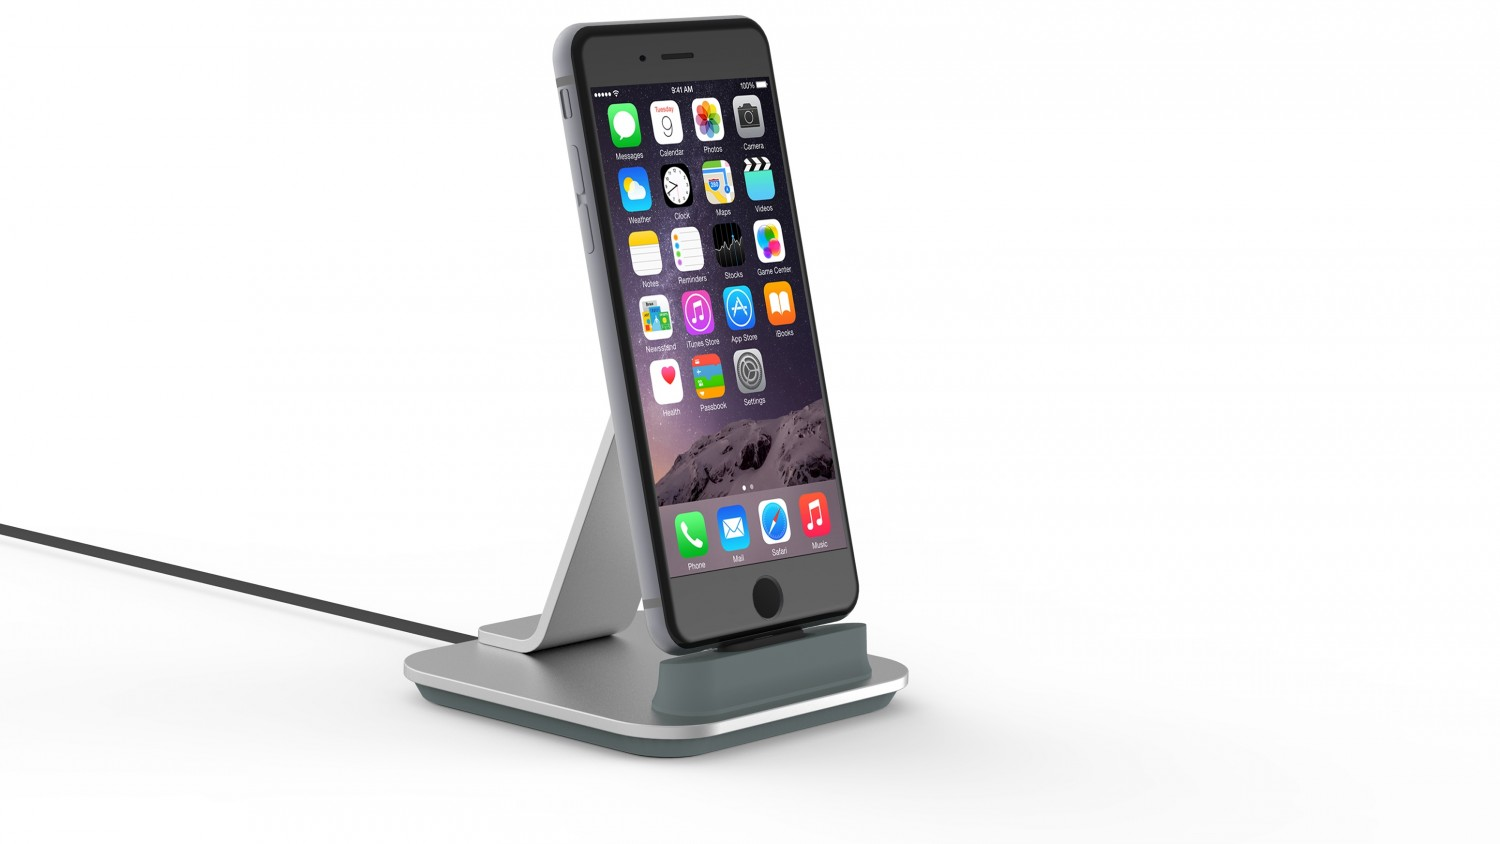 iphone 6 ladestation iphone 6s dockingstation ladestation. Black Bedroom Furniture Sets. Home Design Ideas